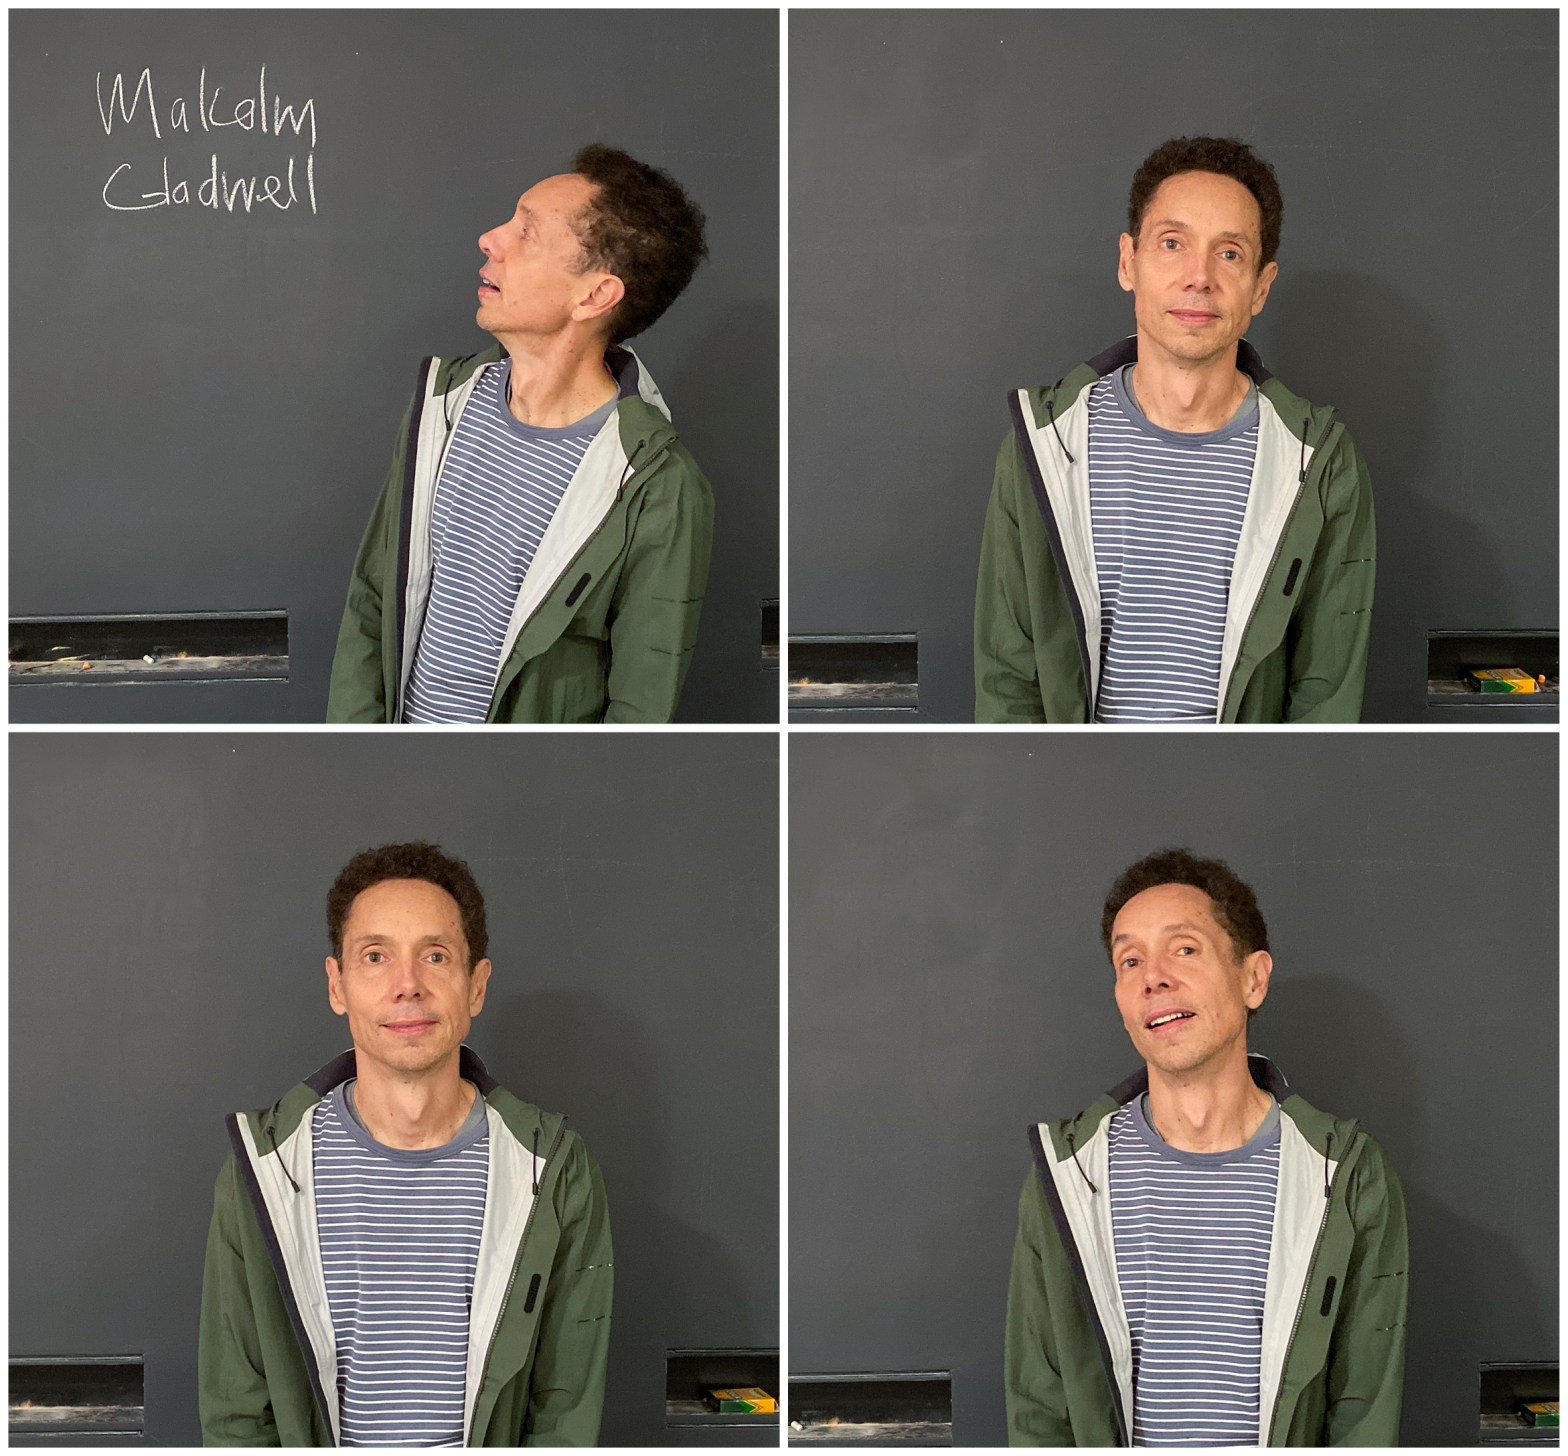 Thumbnail for Malcolm Gladwell